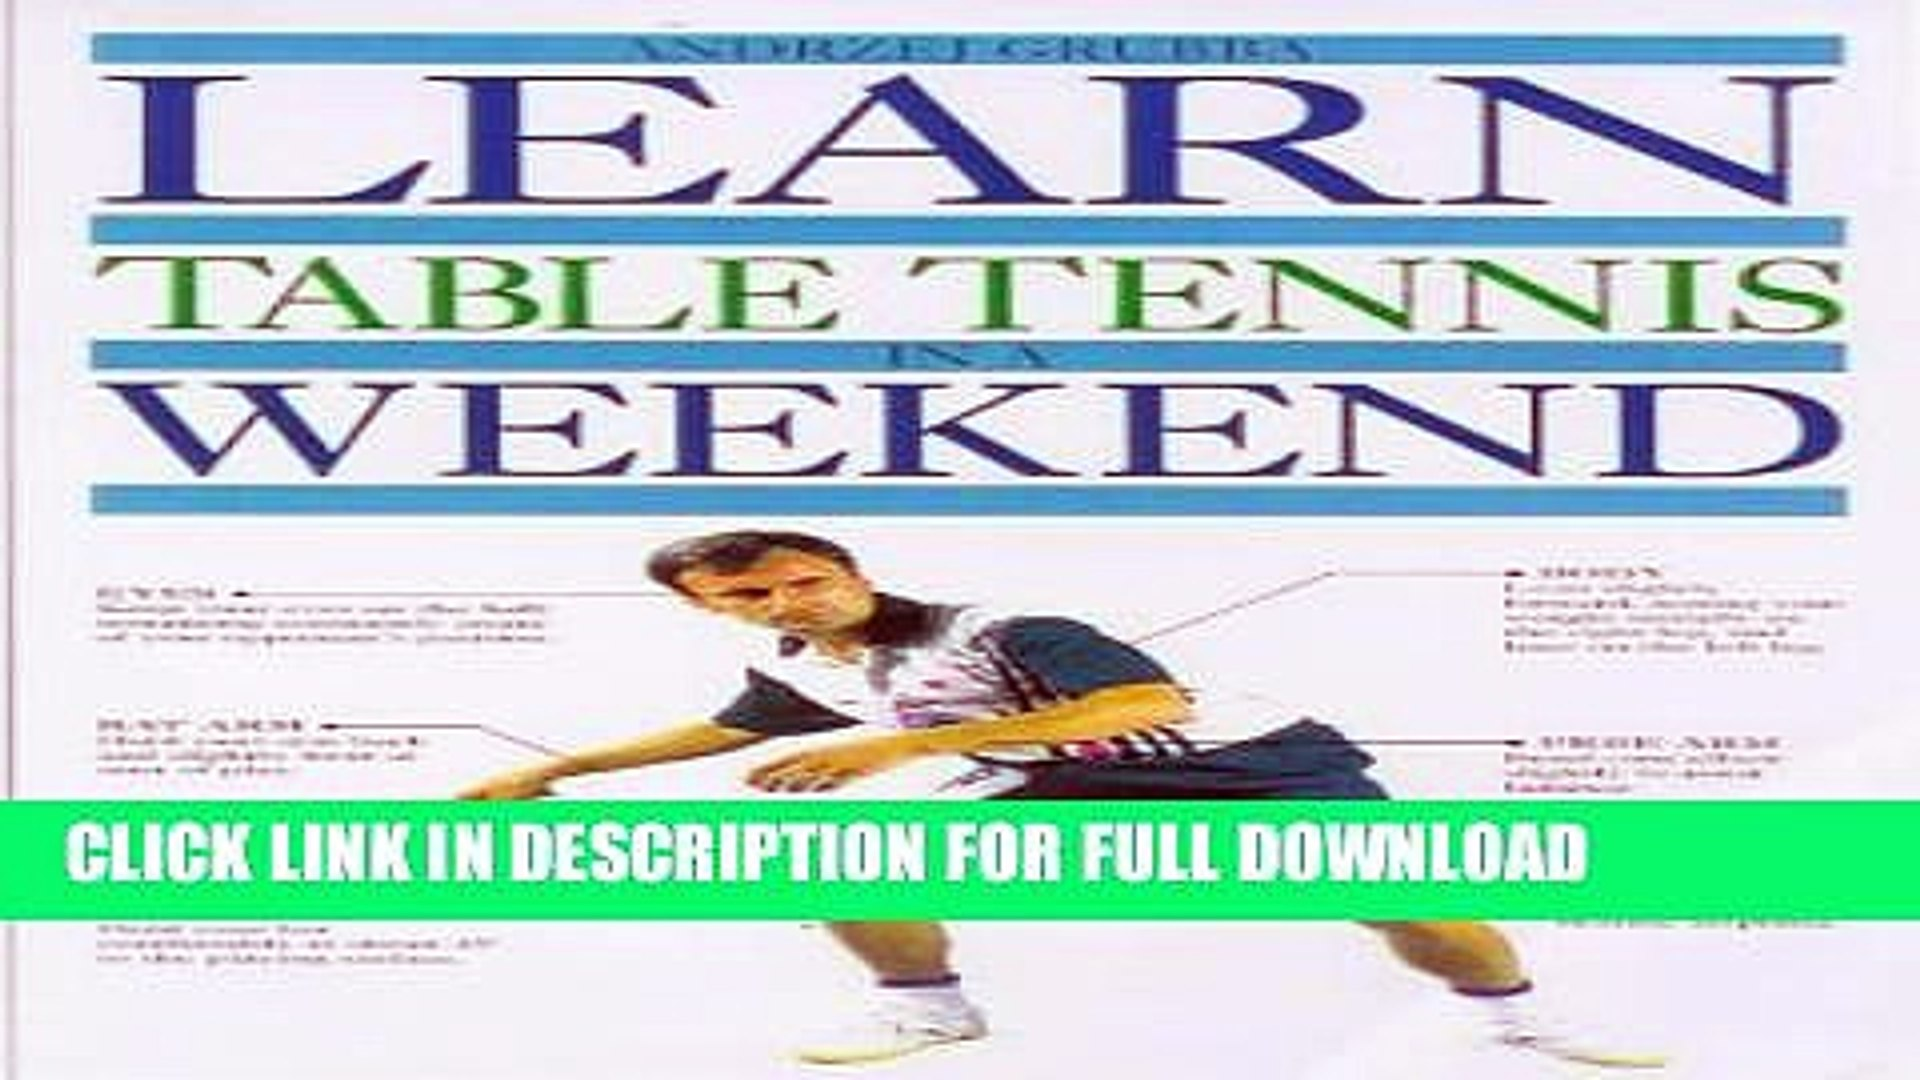 [DOWNLOAD PDF] Learn Table Tennis in a Weekend (Learn in a weekend) READ BOOK FULL